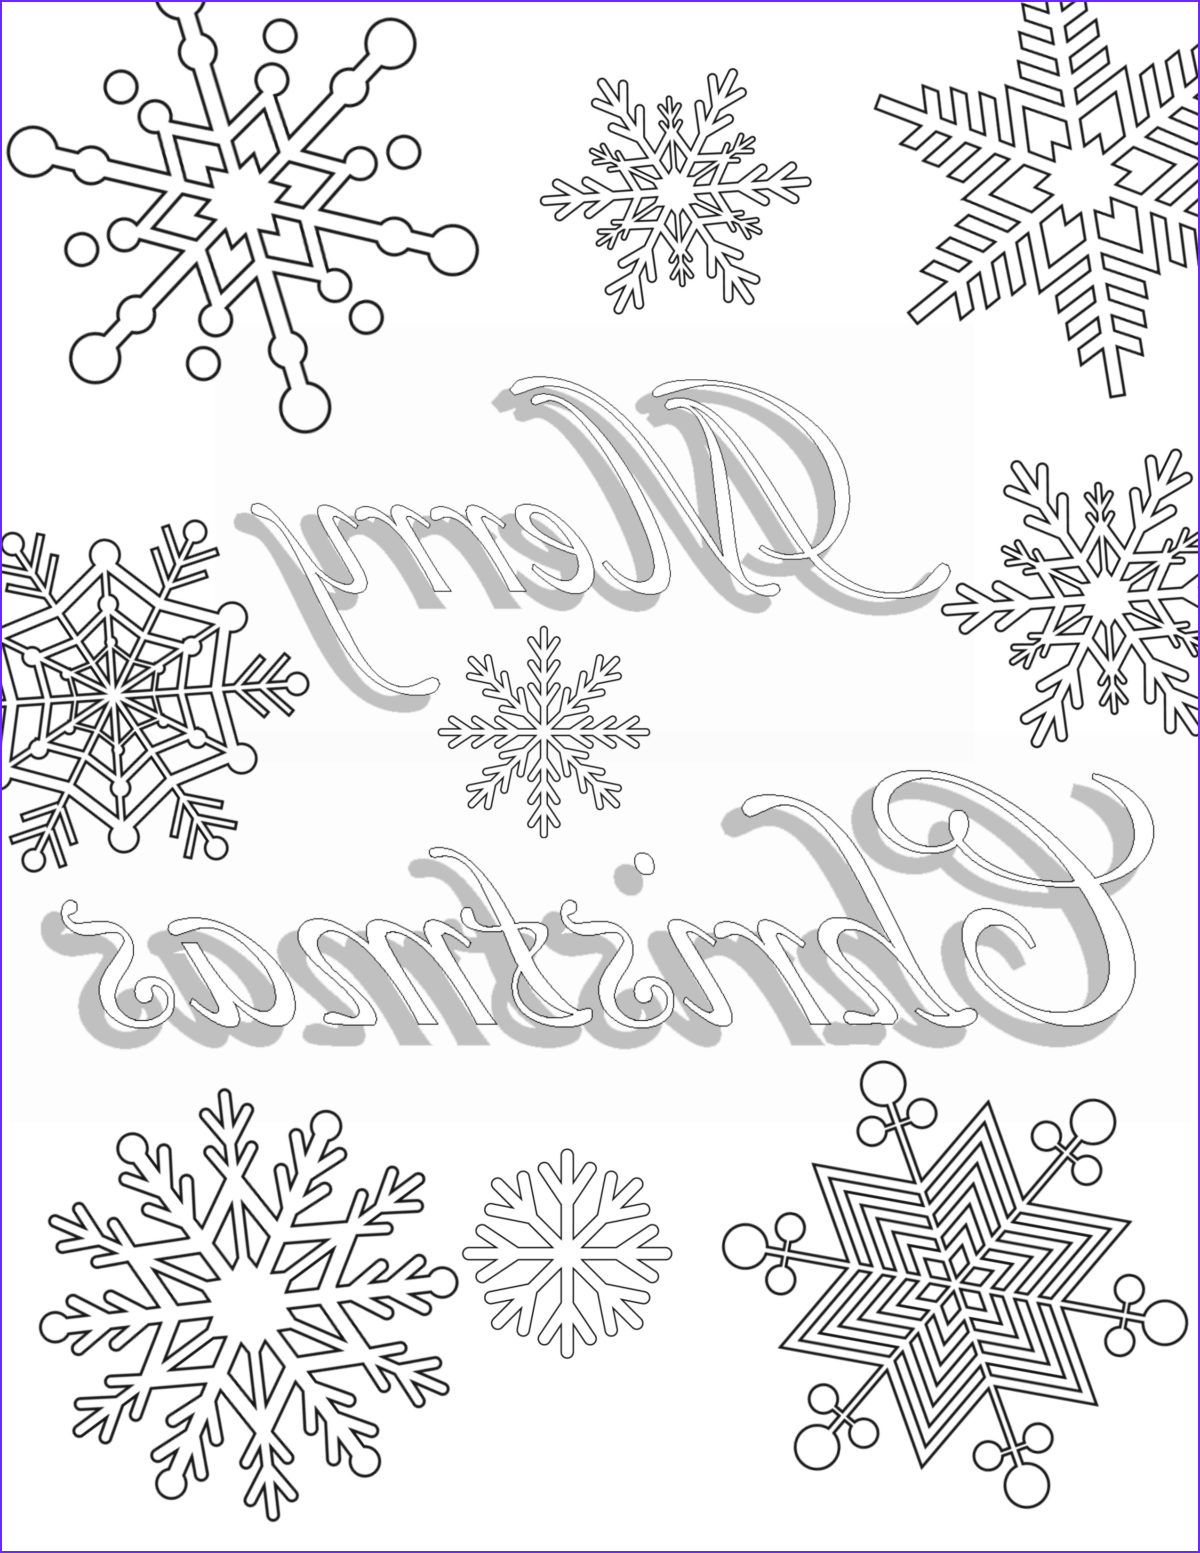 Christmas Adult Coloring Books Unique Image Free Printable Christmas Coloring Pages for Adults